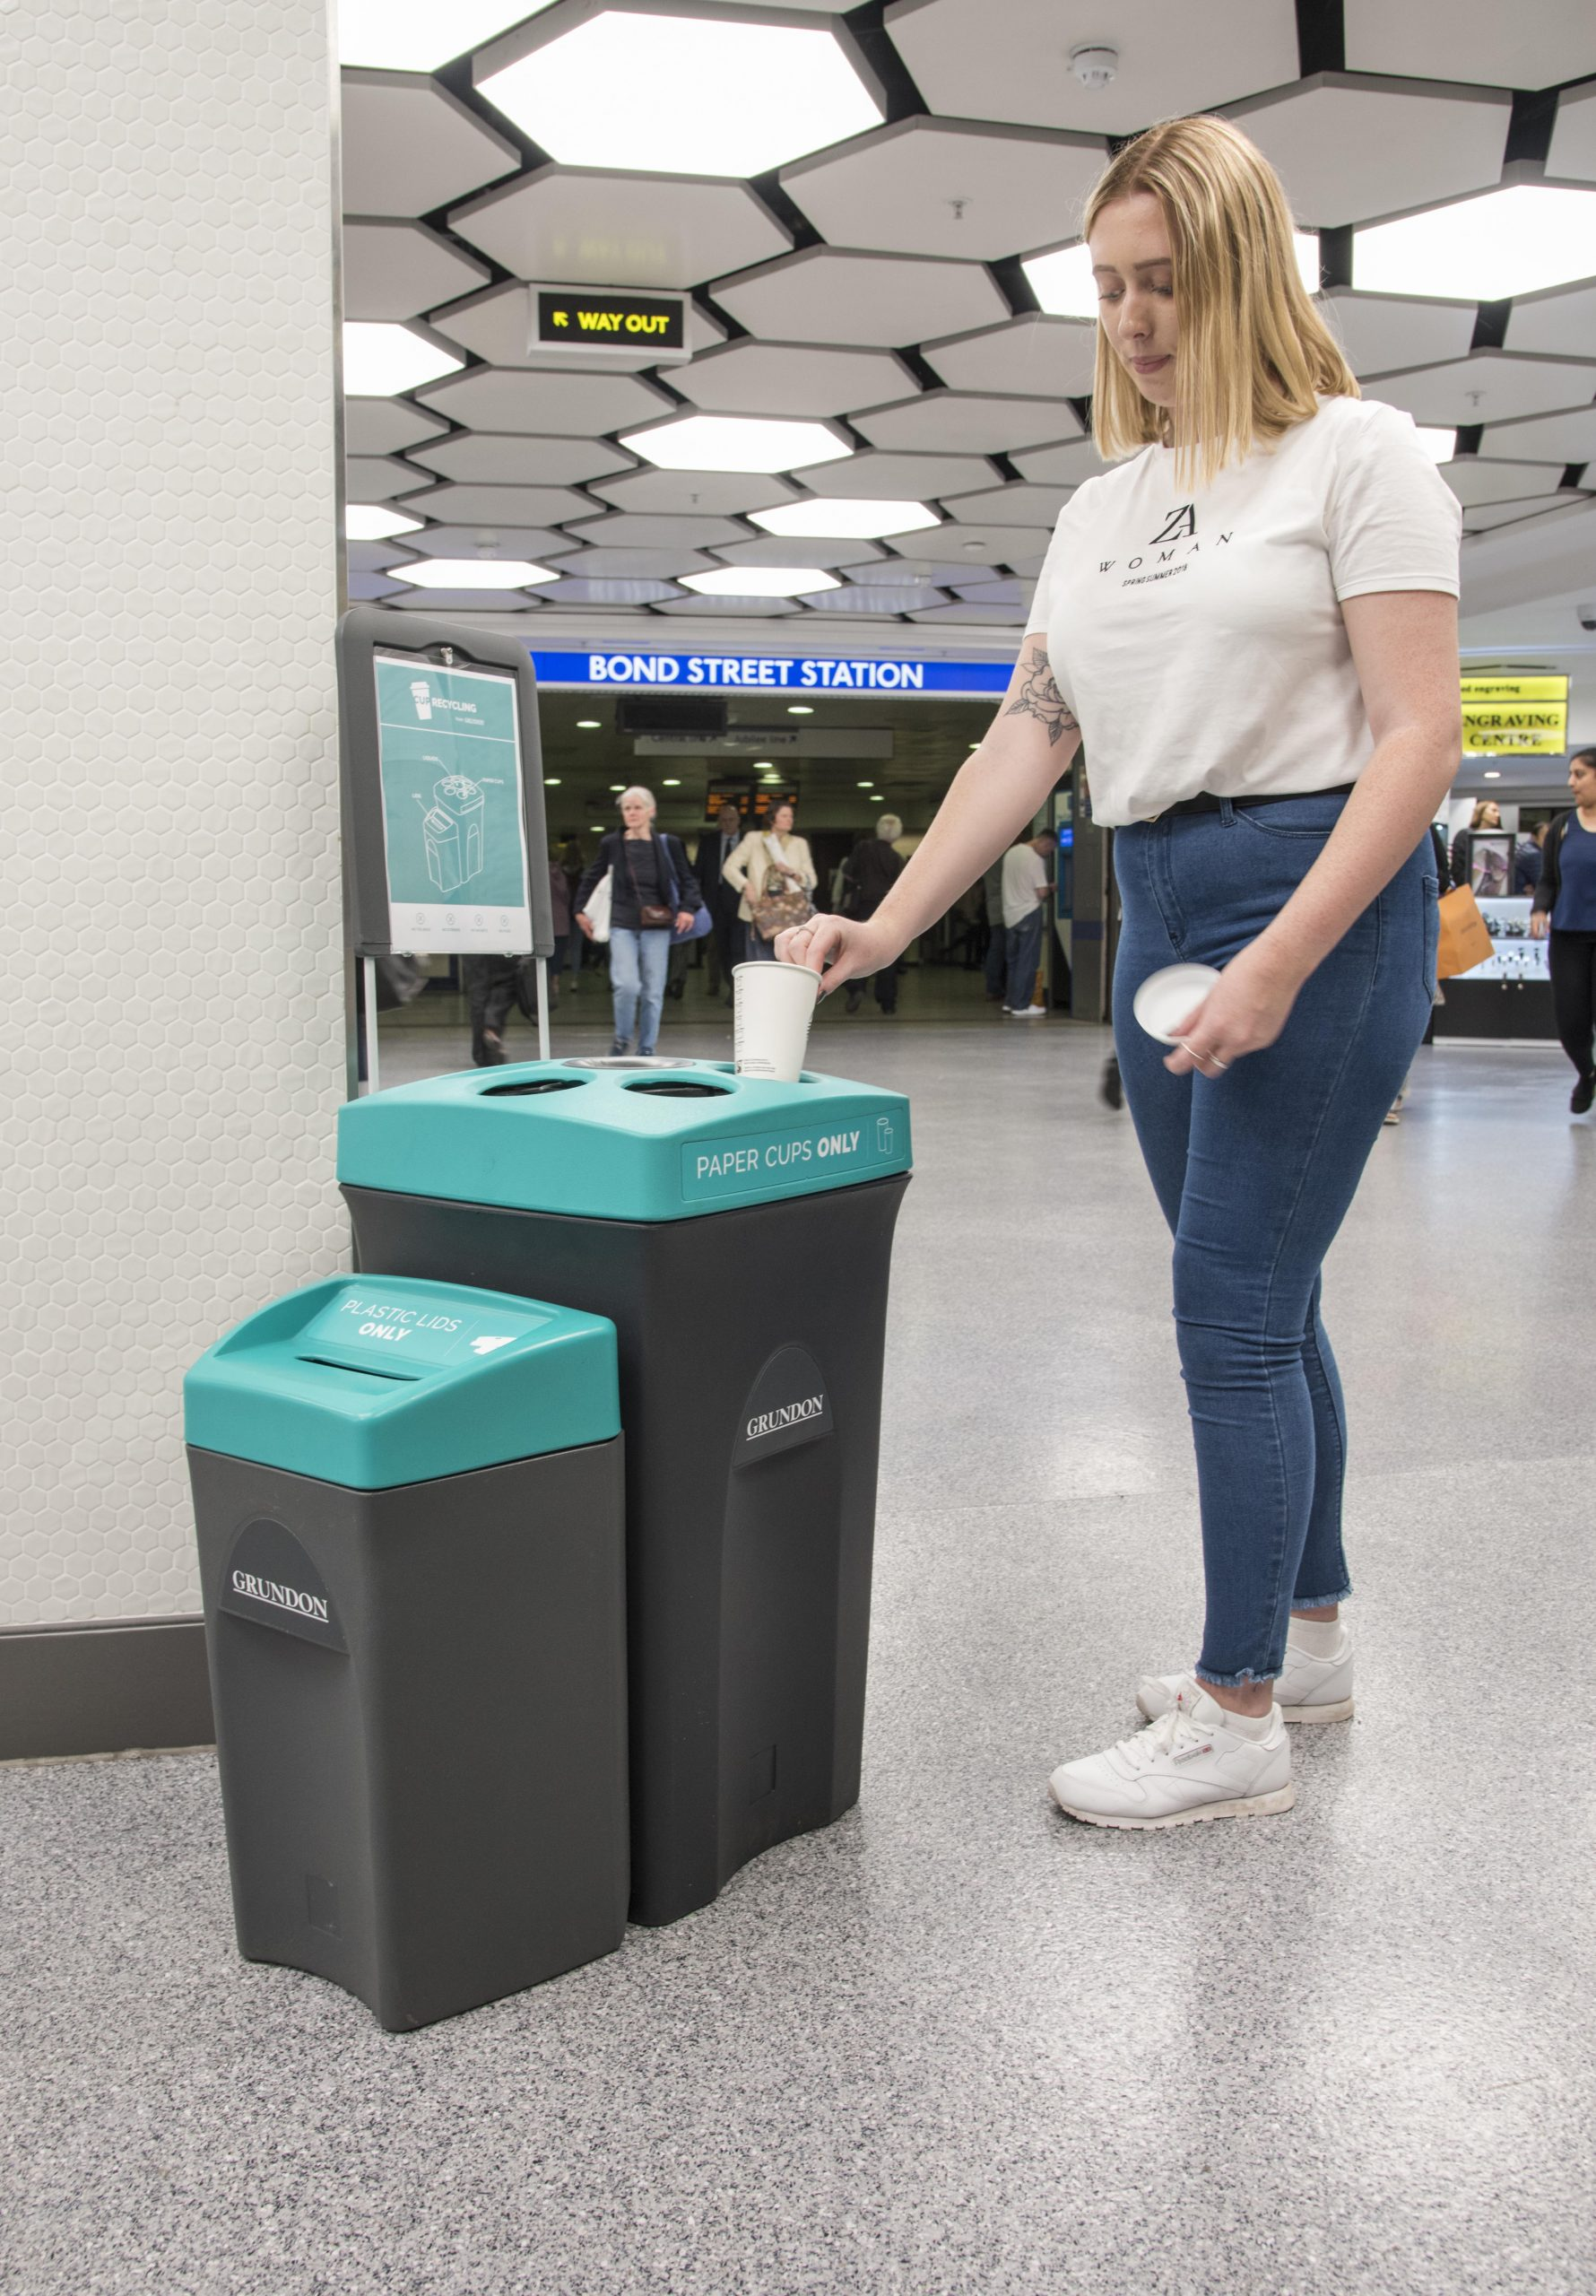 Grundon's specialist colour-coded cup recycling bins aid segregation